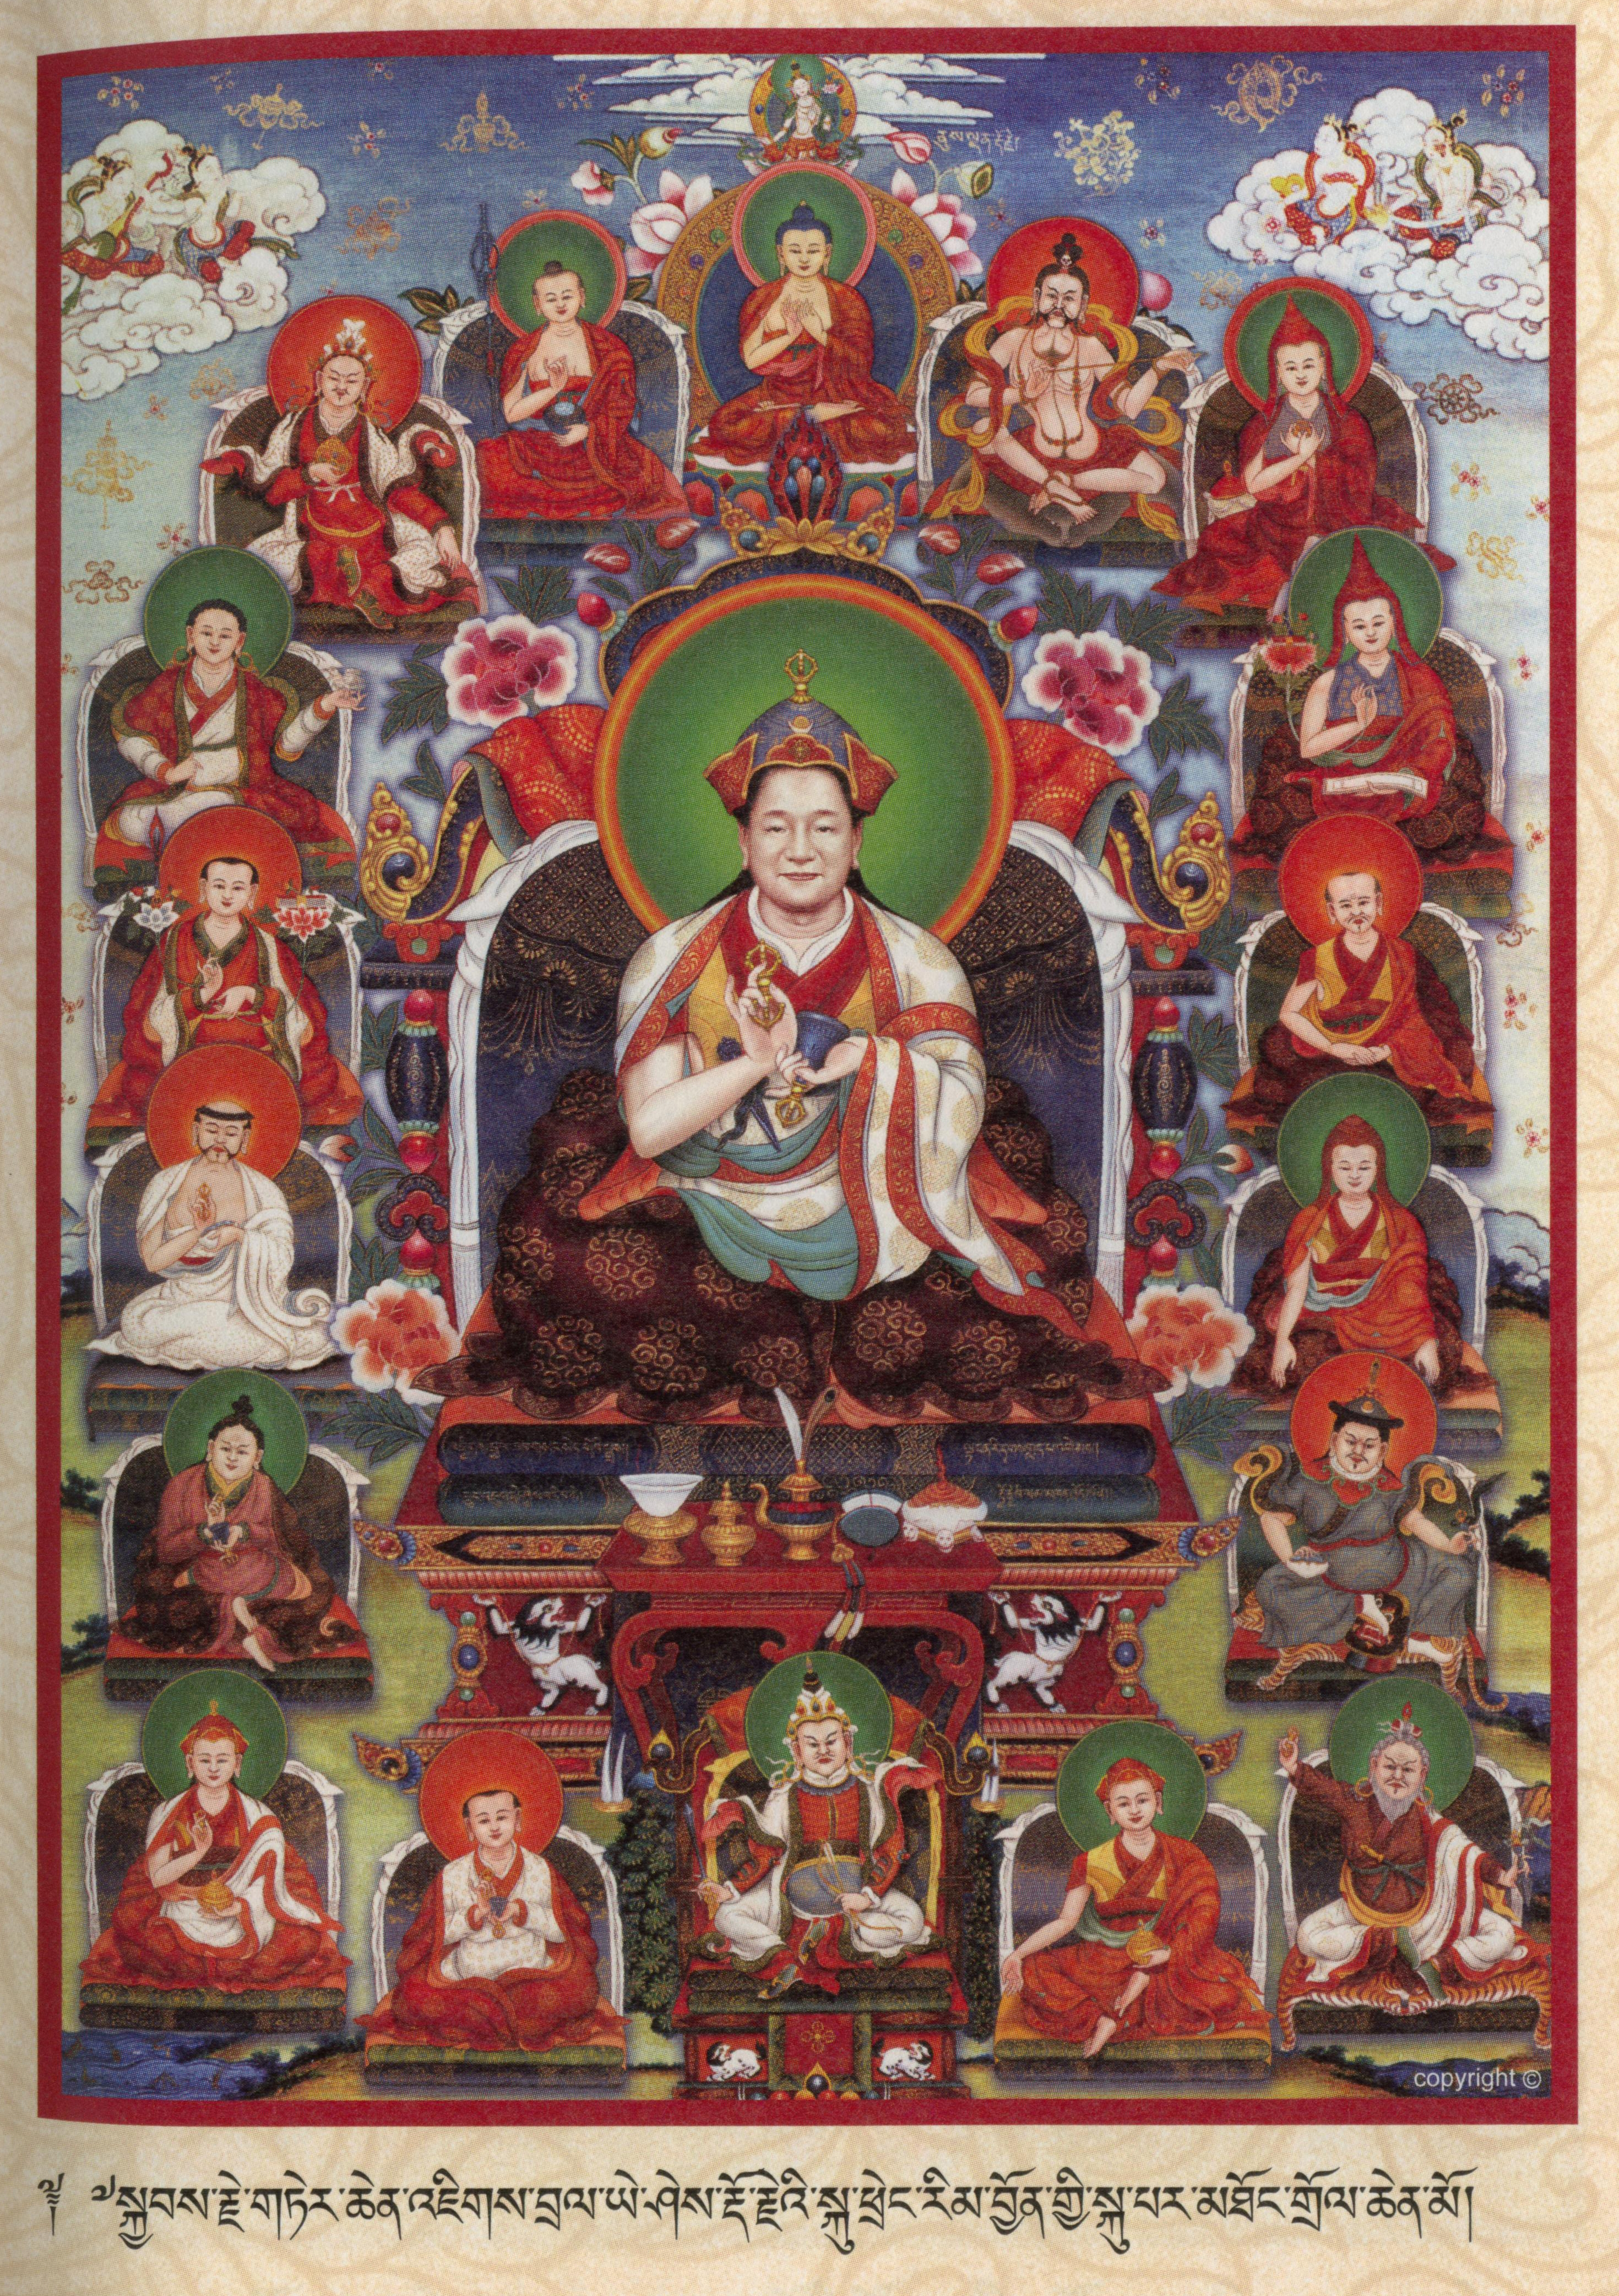 Reincarnations of Dudjom Rinpoche